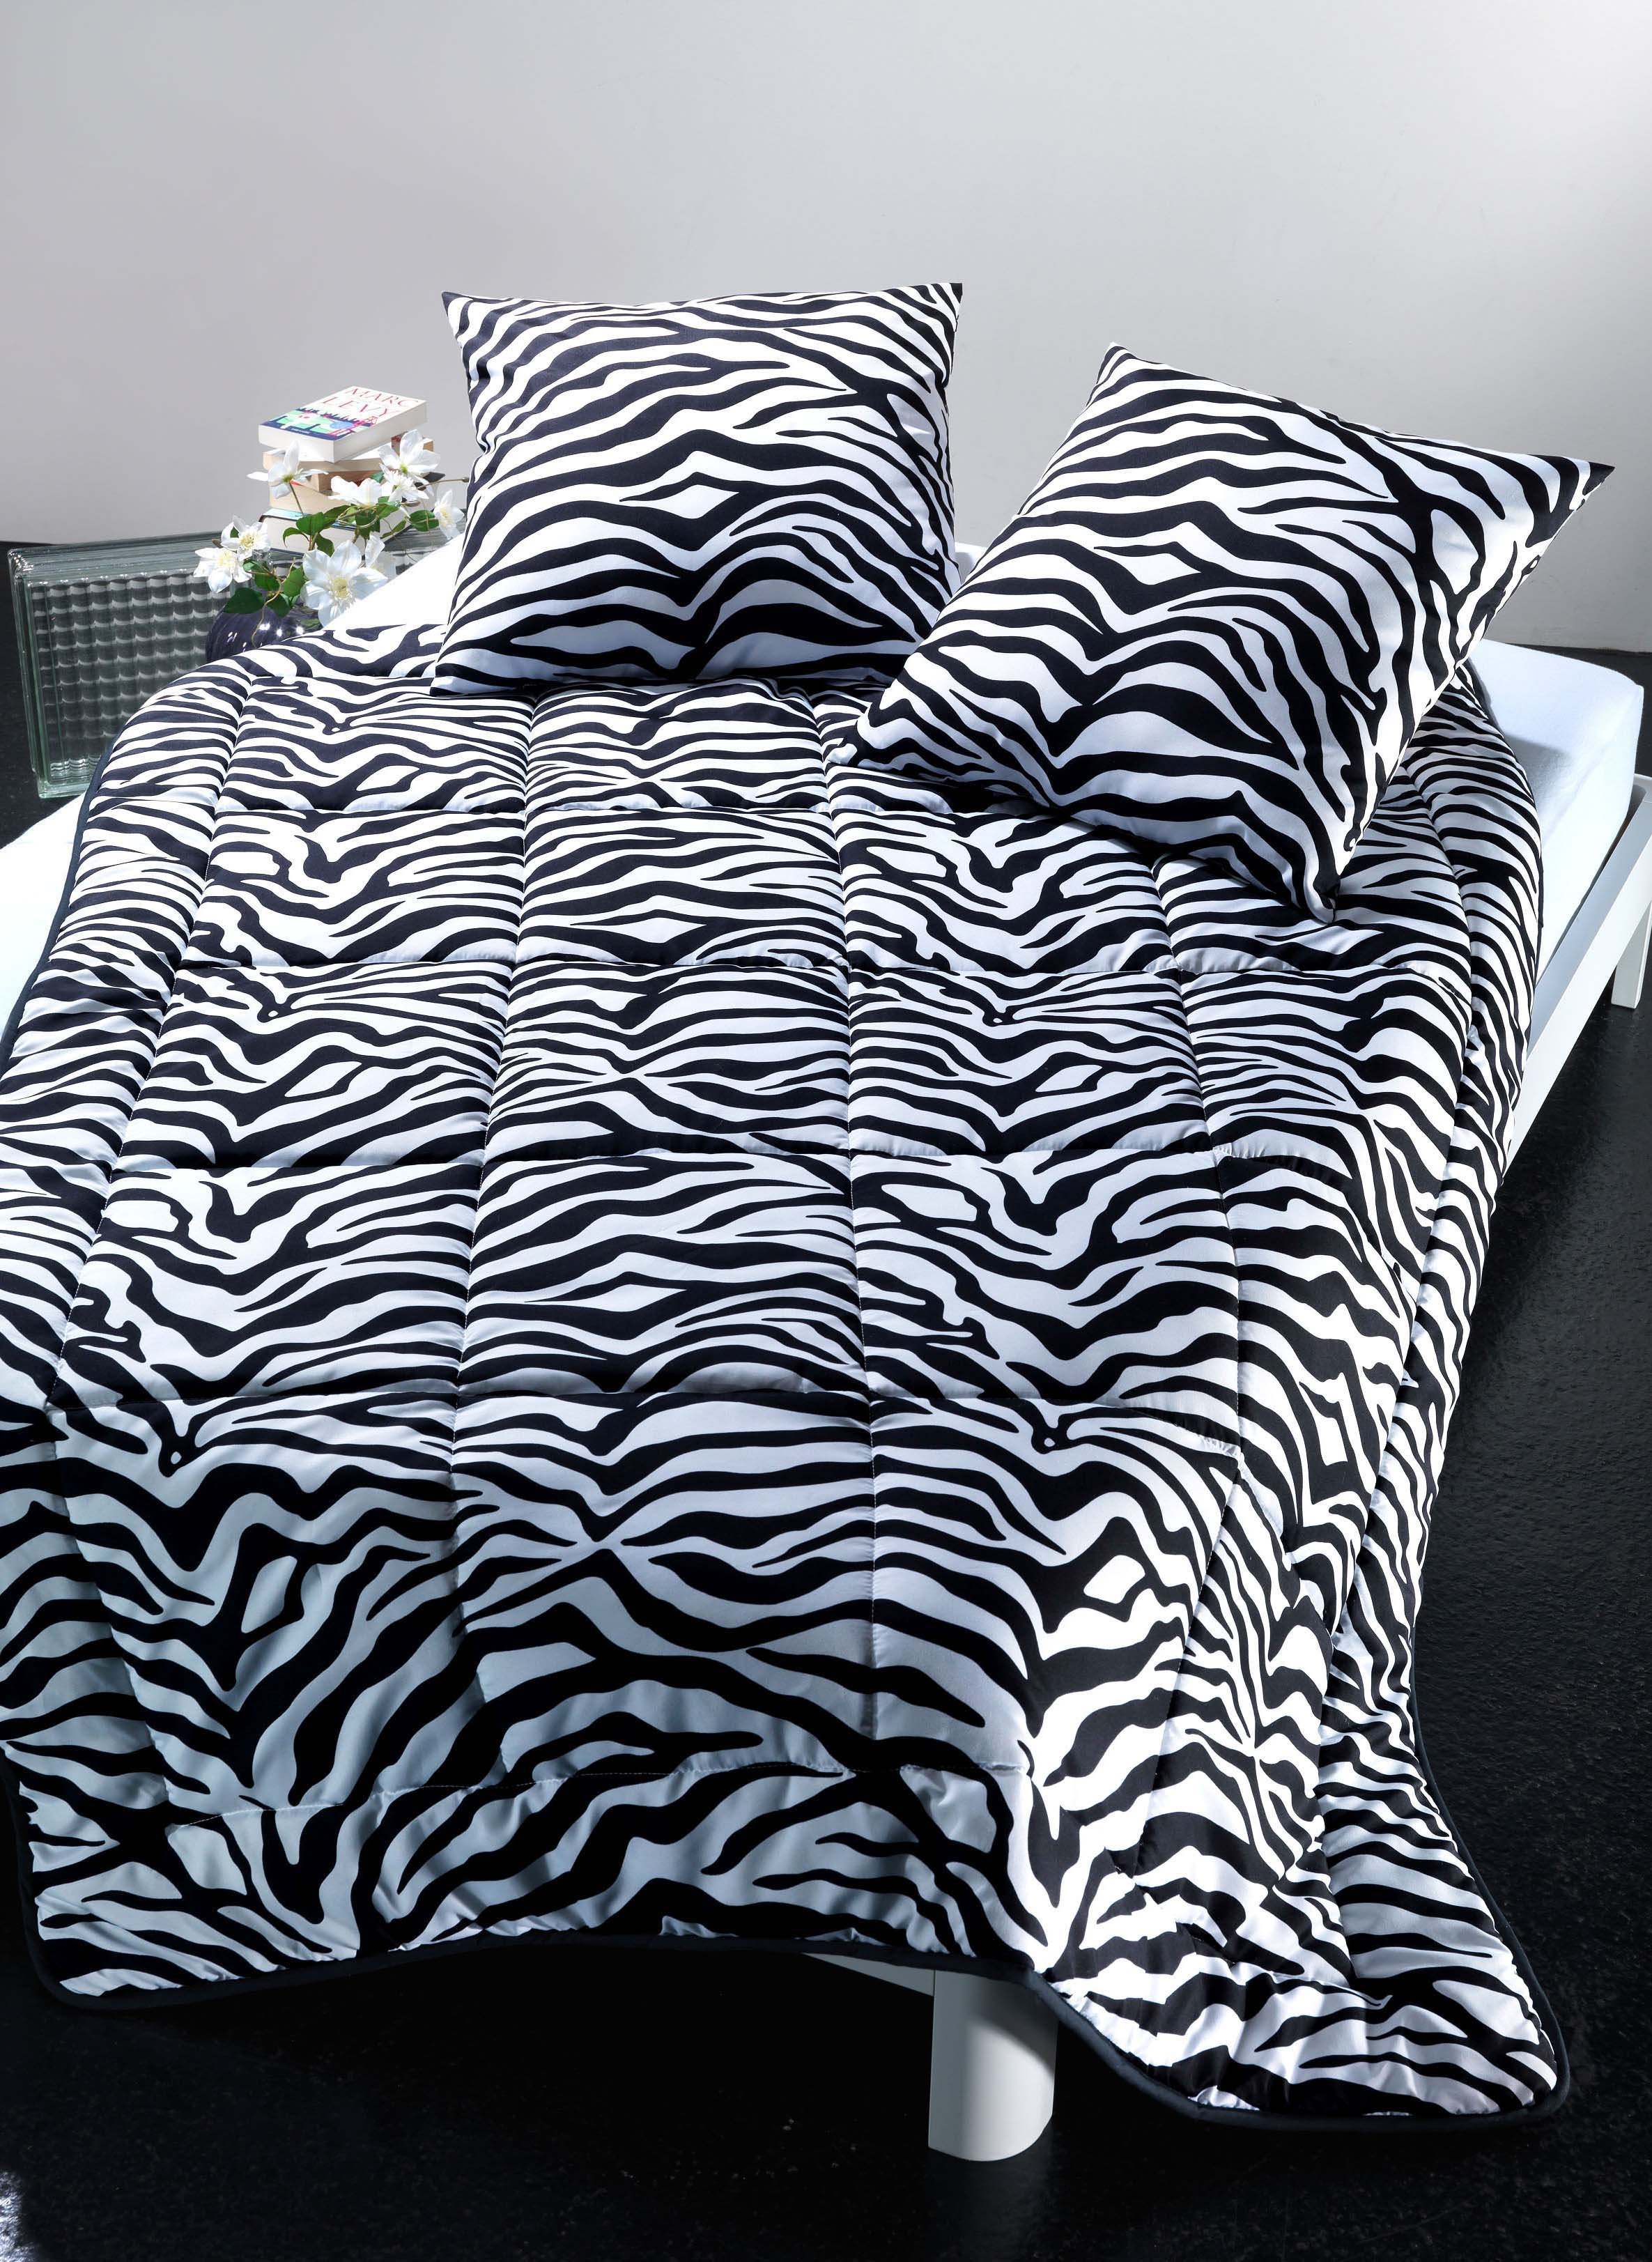 couvre lit zebra. Black Bedroom Furniture Sets. Home Design Ideas